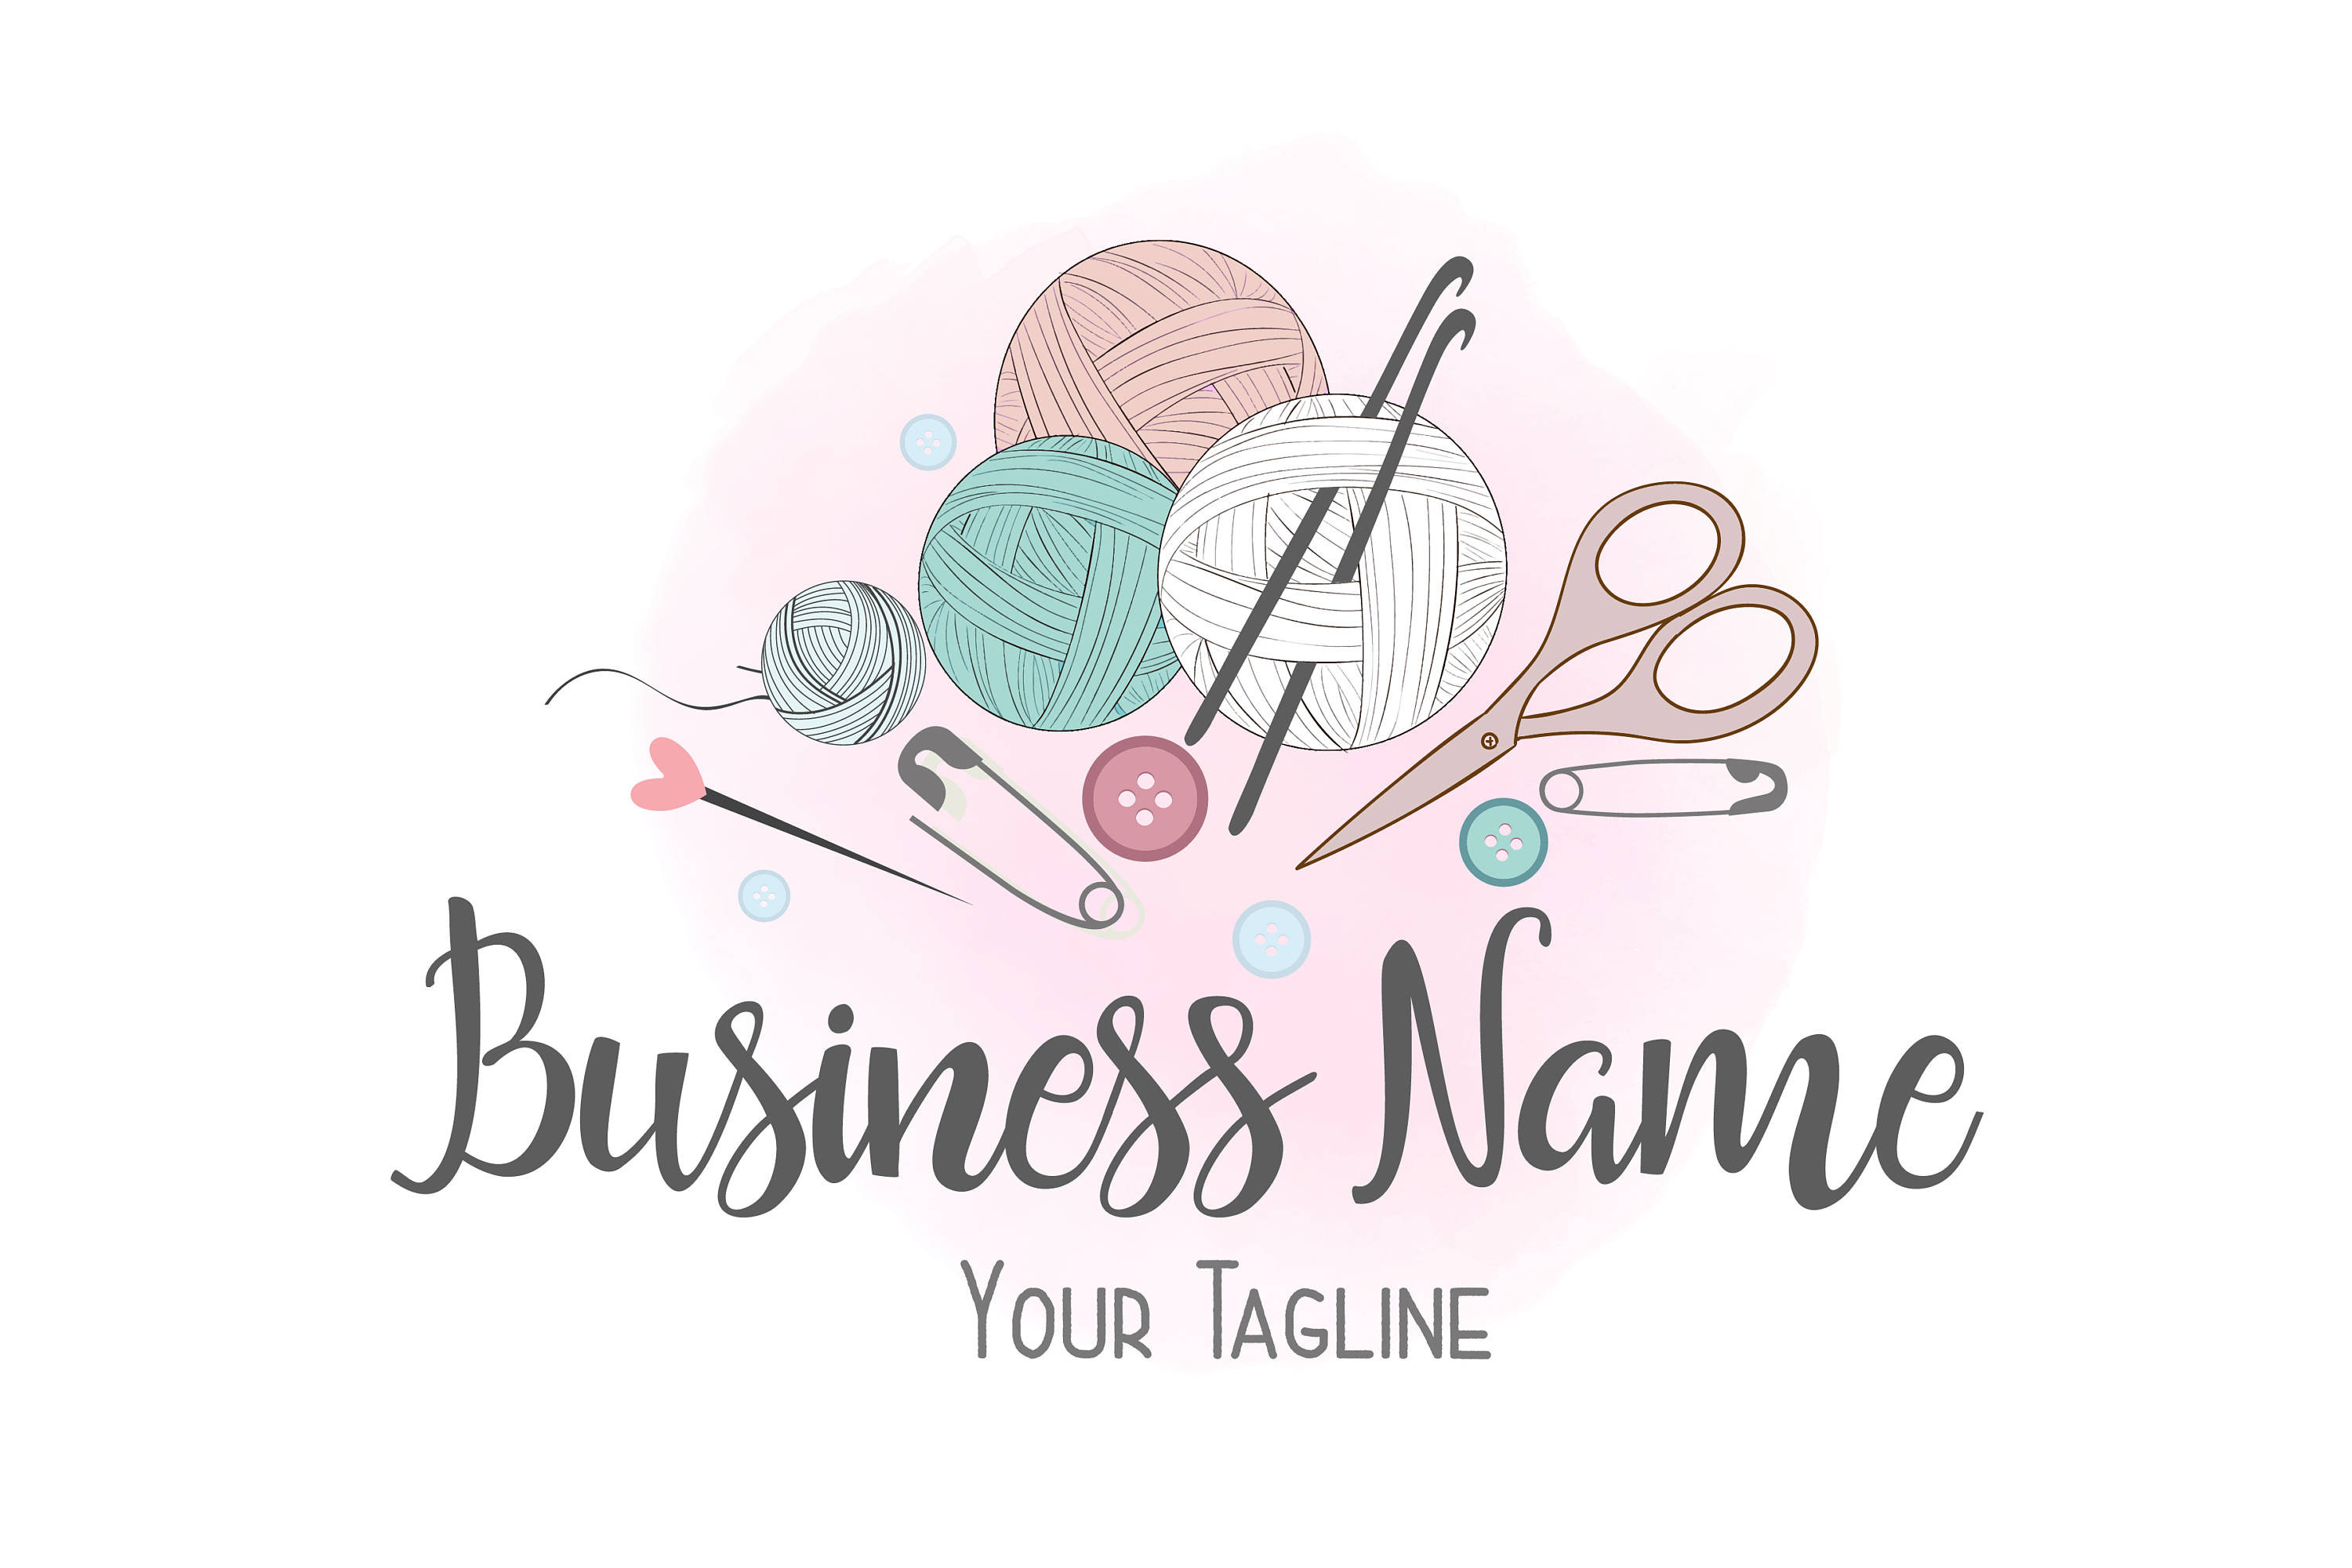 Crochet Business Name Ideas Awesome Custom Logo Design Crochet Yarn Logo Sew Knitting Logo Of Wonderful 48 Images Crochet Business Name Ideas